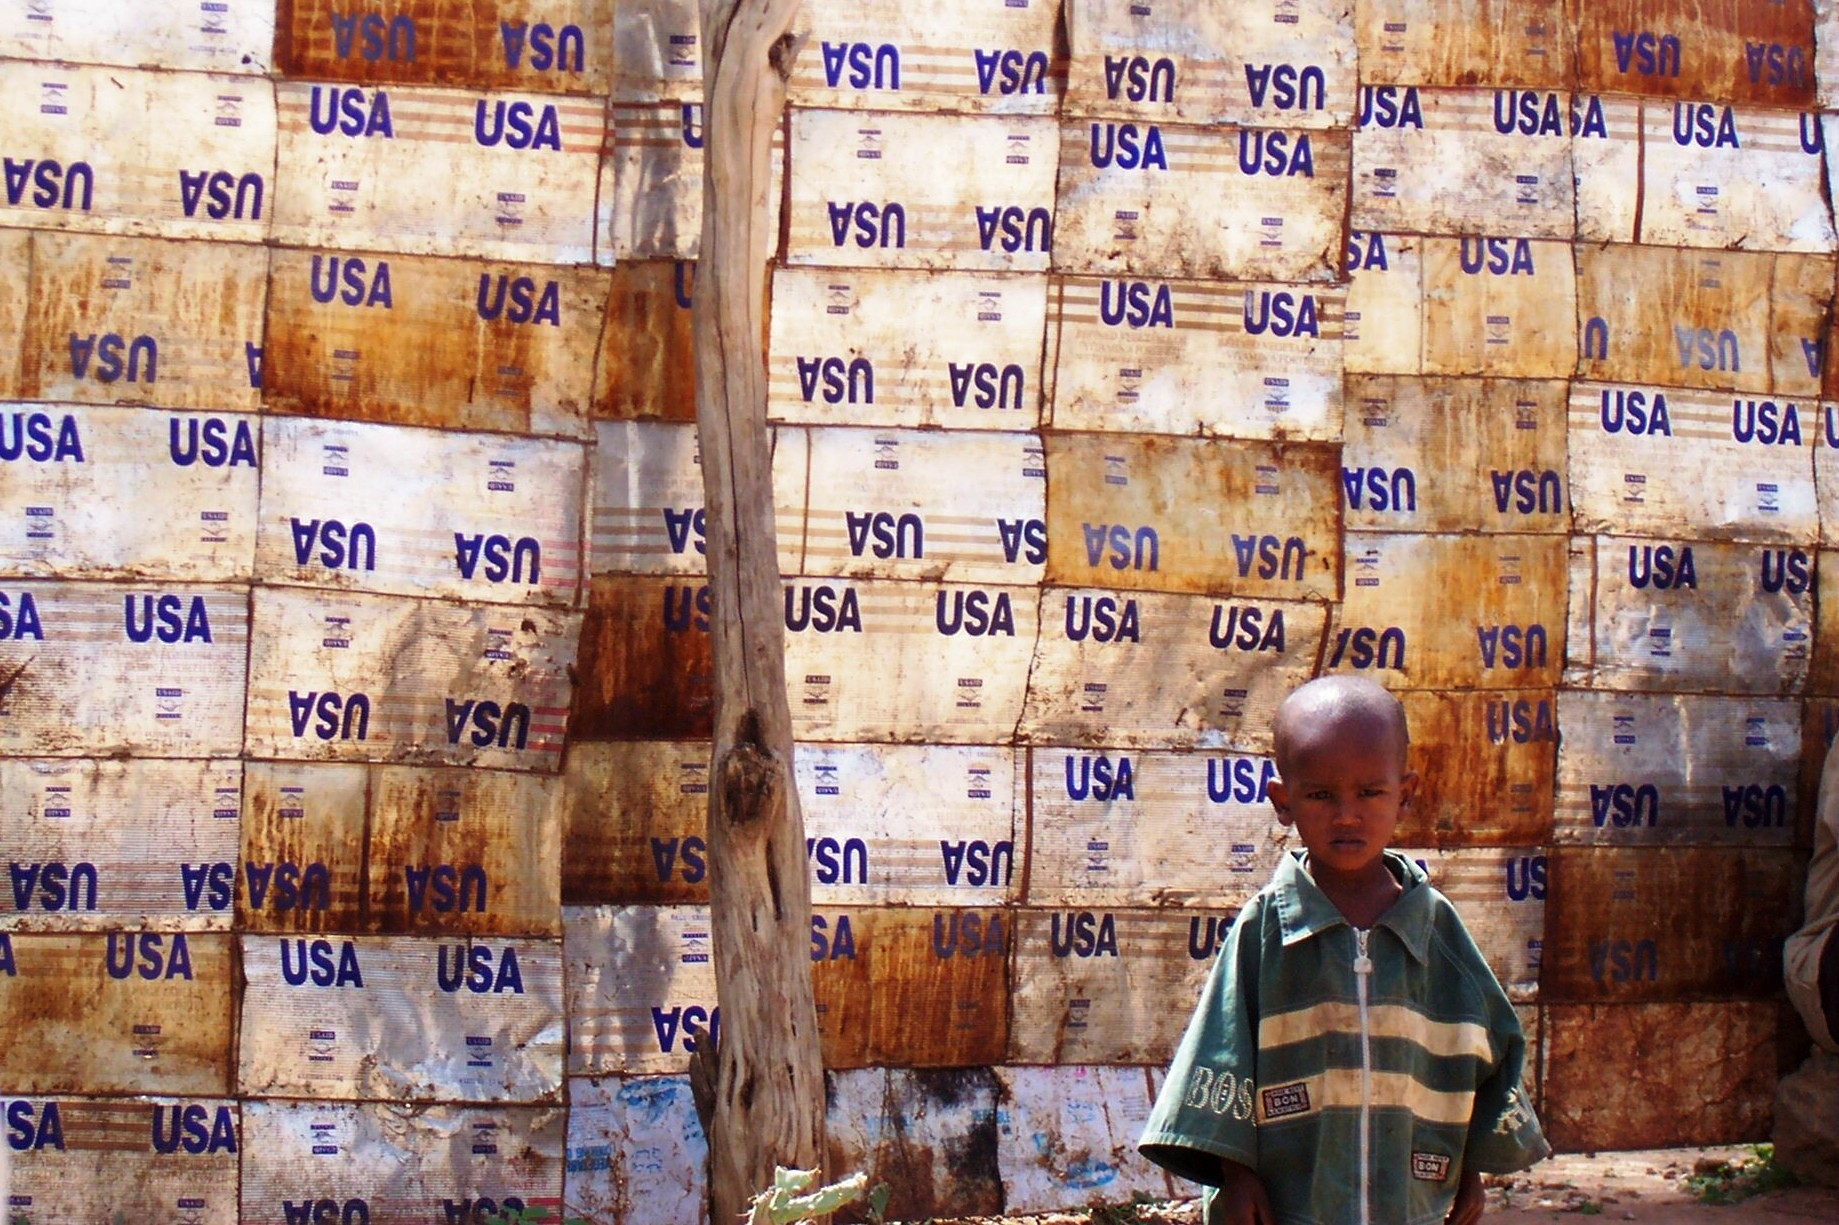 Does food aid cause conflict? | Oxfam America The Politics